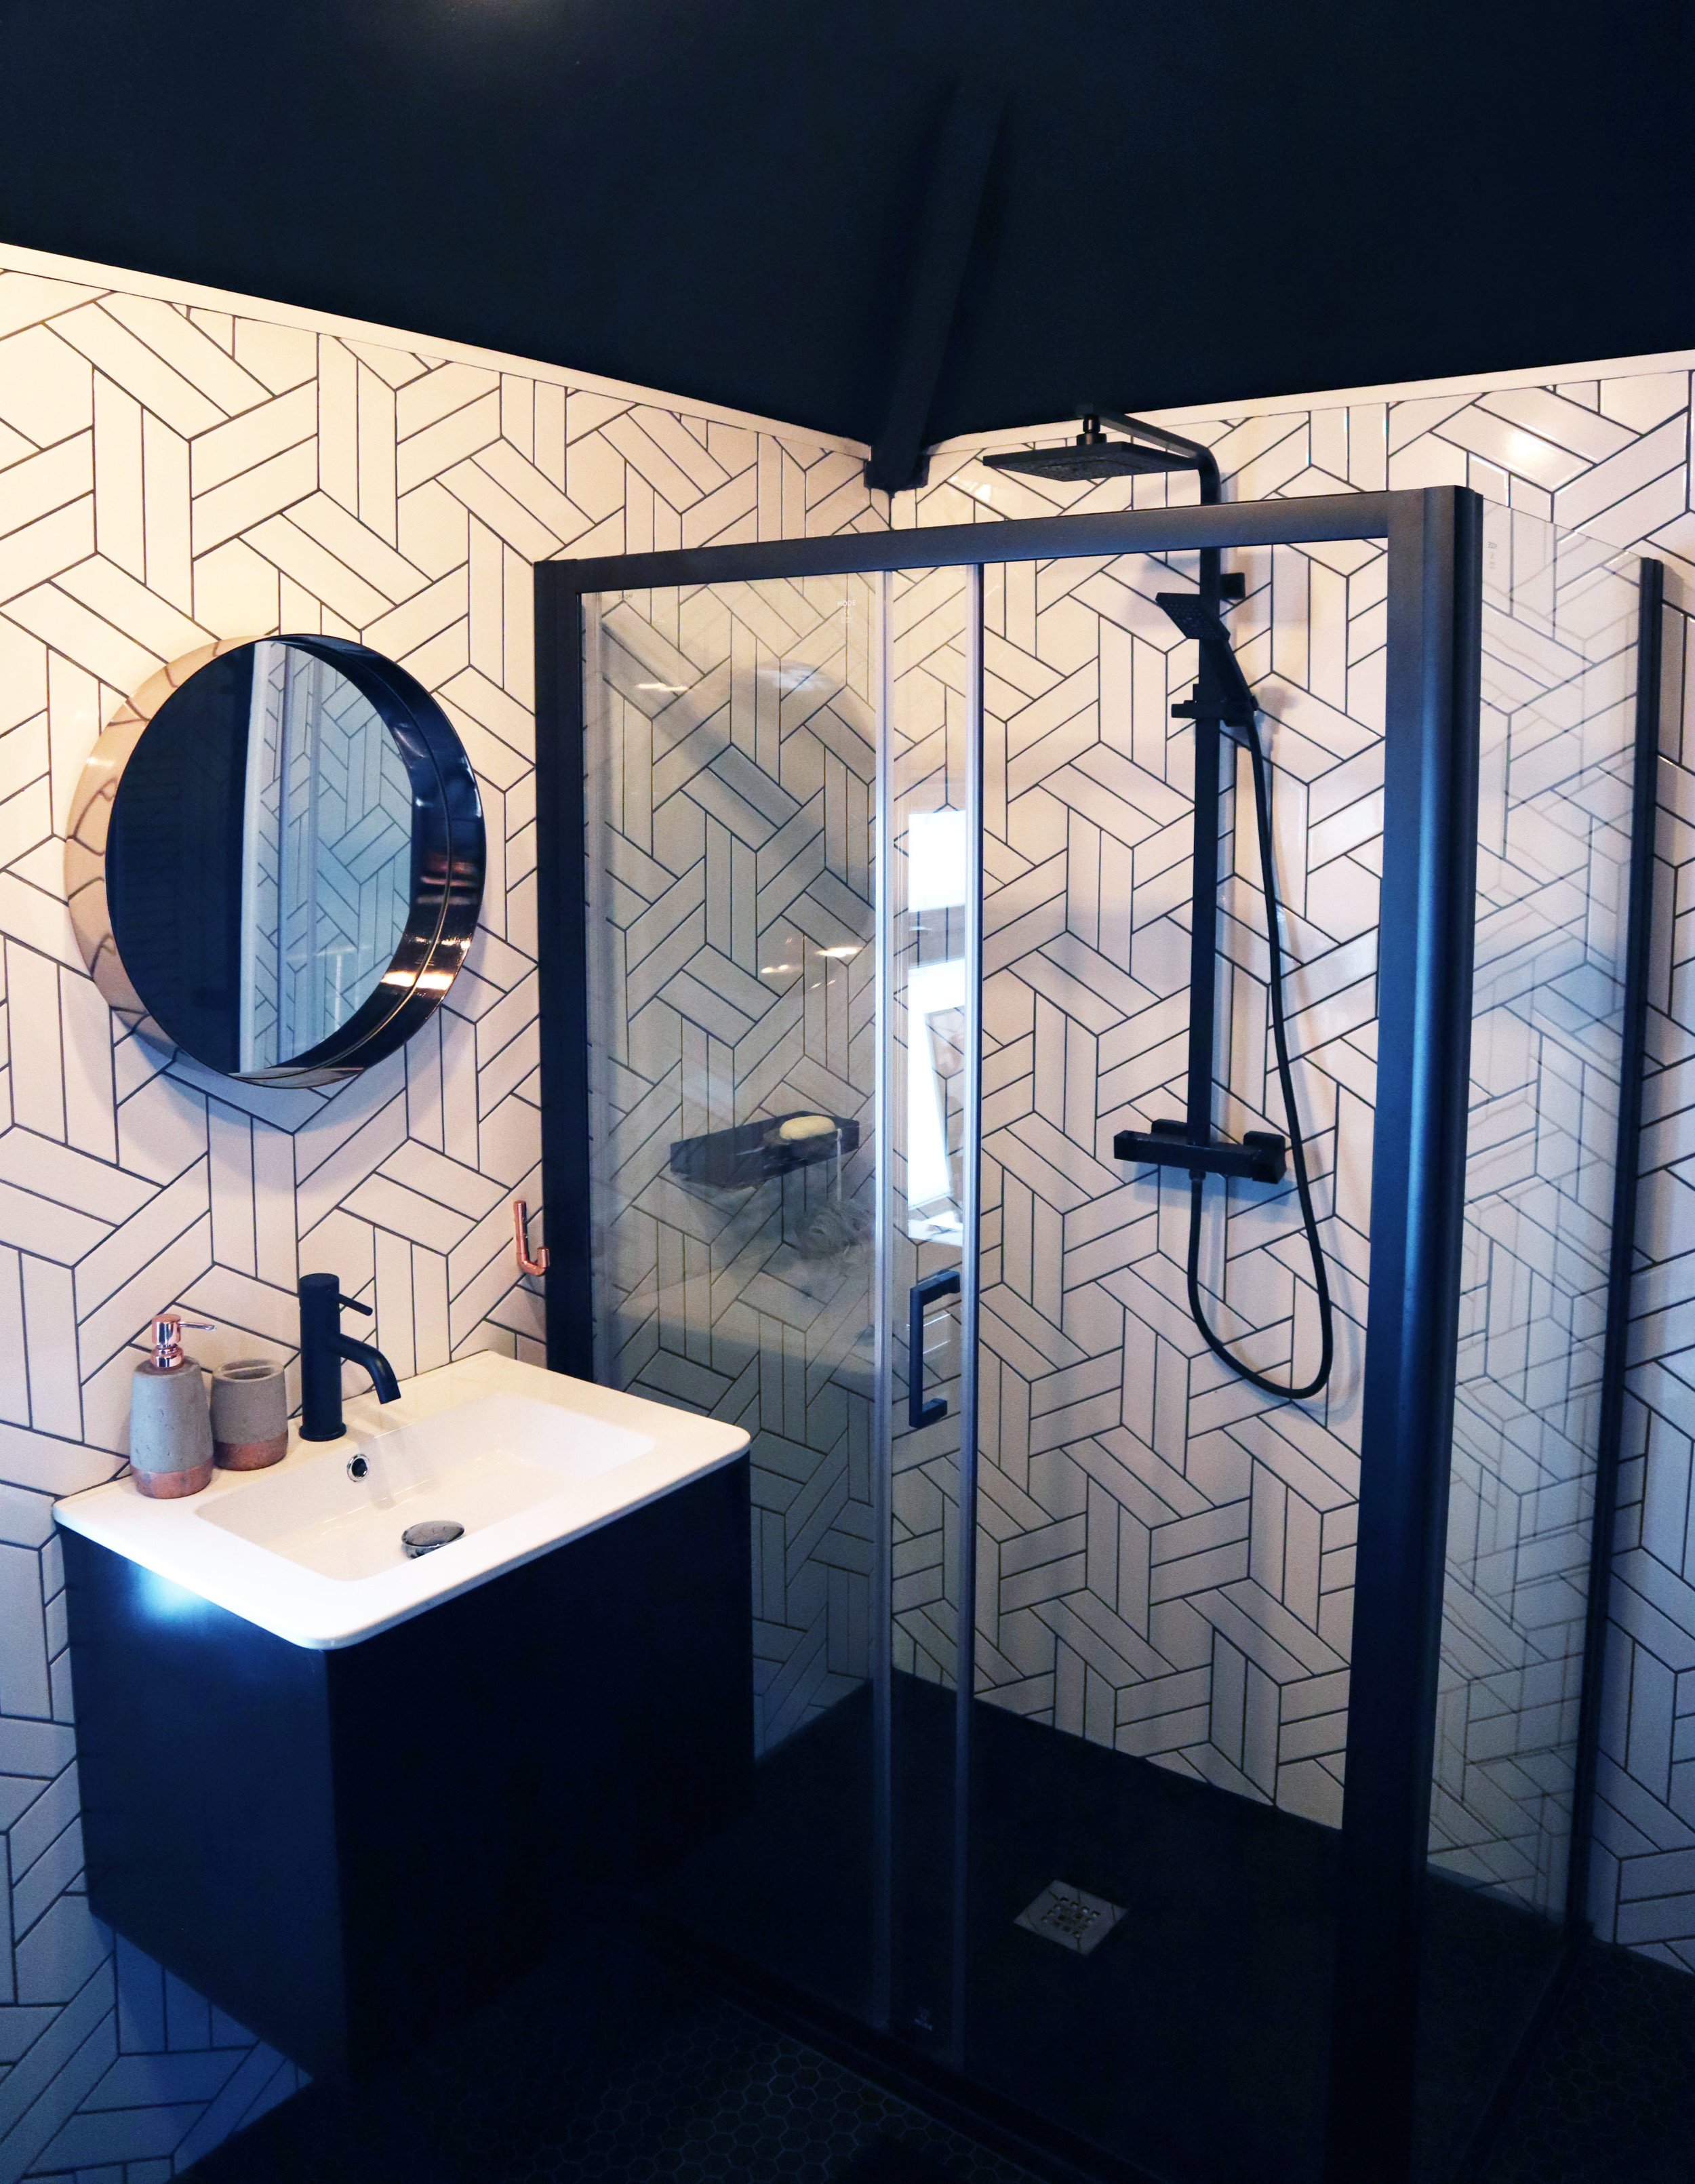 SpaceyStudio_BathroomRedesign1